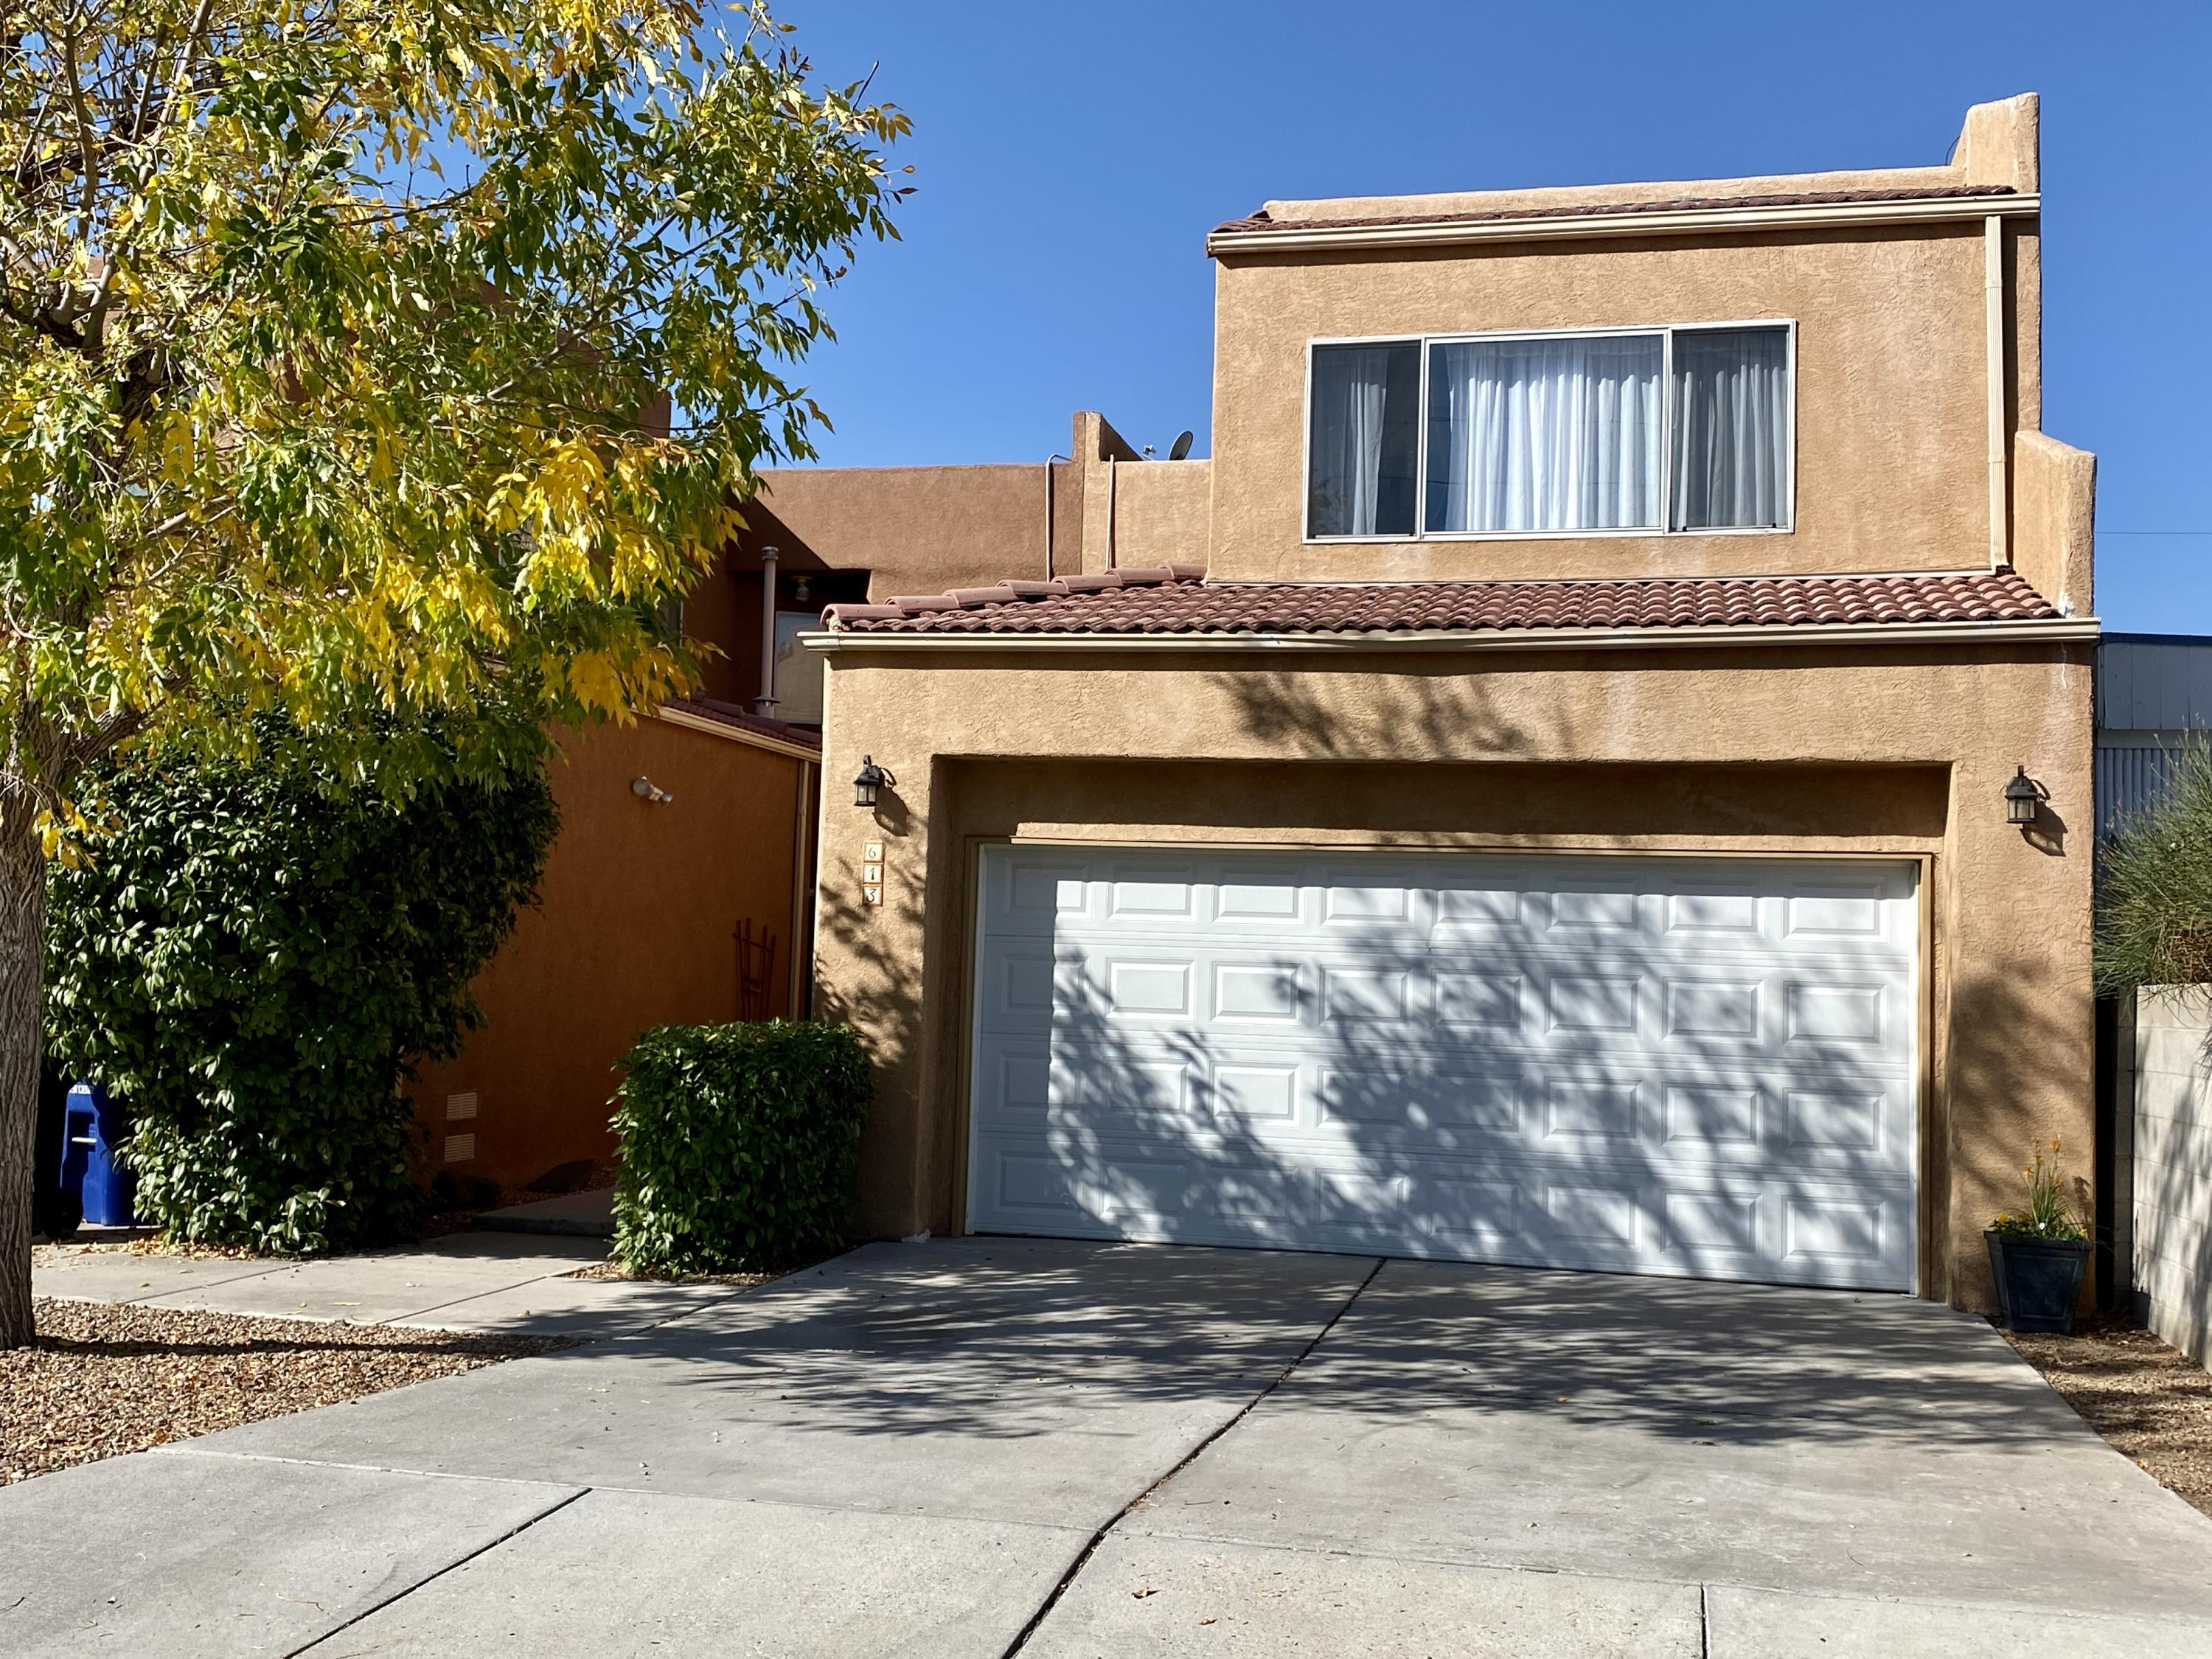 Centrally located 3 Bedroom/3 Bath end unit townhome with 2 car garage & no HOA FEES! 1825 sqft. with room for all your living needs. Well maintained with a New Roof installed in 2019, New Heating/Cooling HVAC system installed summer 2020.  Kitchen with breakfast area & walk-in pantry, stainless steel appliances, cathedral ceiling w/3 skylights to bring in lots of natural light. Gas fireplace, large master bedroom w/walk in closet. Laundry room w/washer and dryer and lots of storage, low maintenance back yard, private gated entry courtyard. Seller to include a home warranty.  Owner is non-smoker and has had no pets during ownership. Close to Nob Hill, CNM, UNM, Sandia Labs, and Kirtland AFB, Marion L. Fox Park & many shopping conveniences.